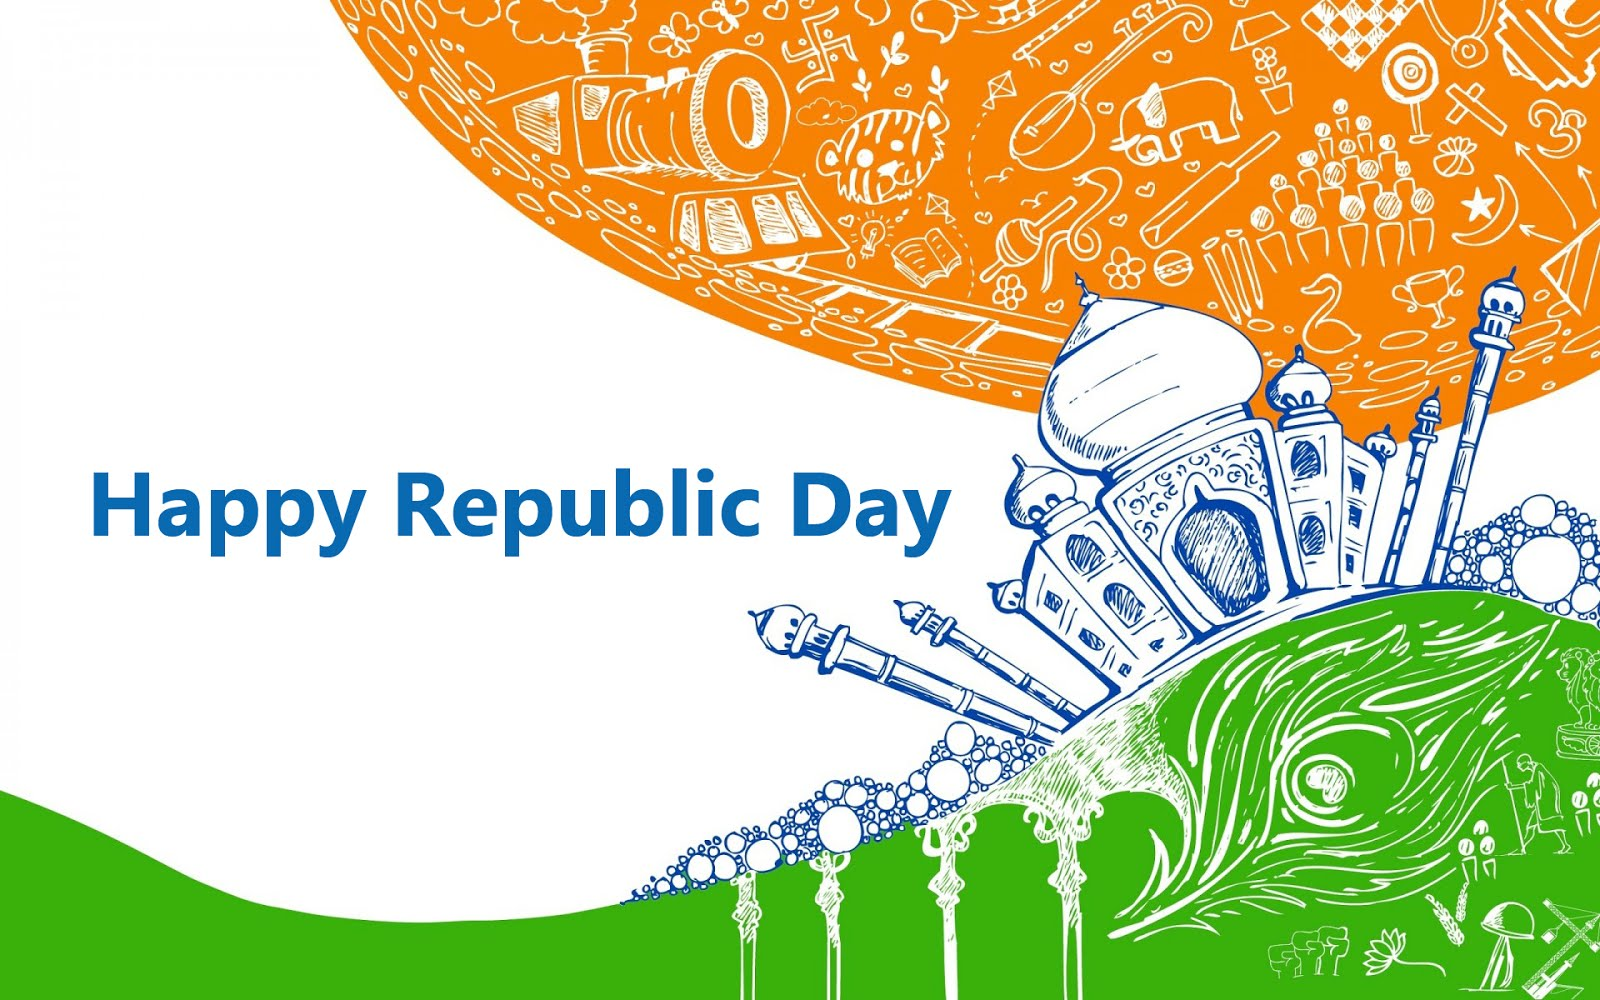 Happy Republic Day Imageswallpaperscardsgifspictures Happy